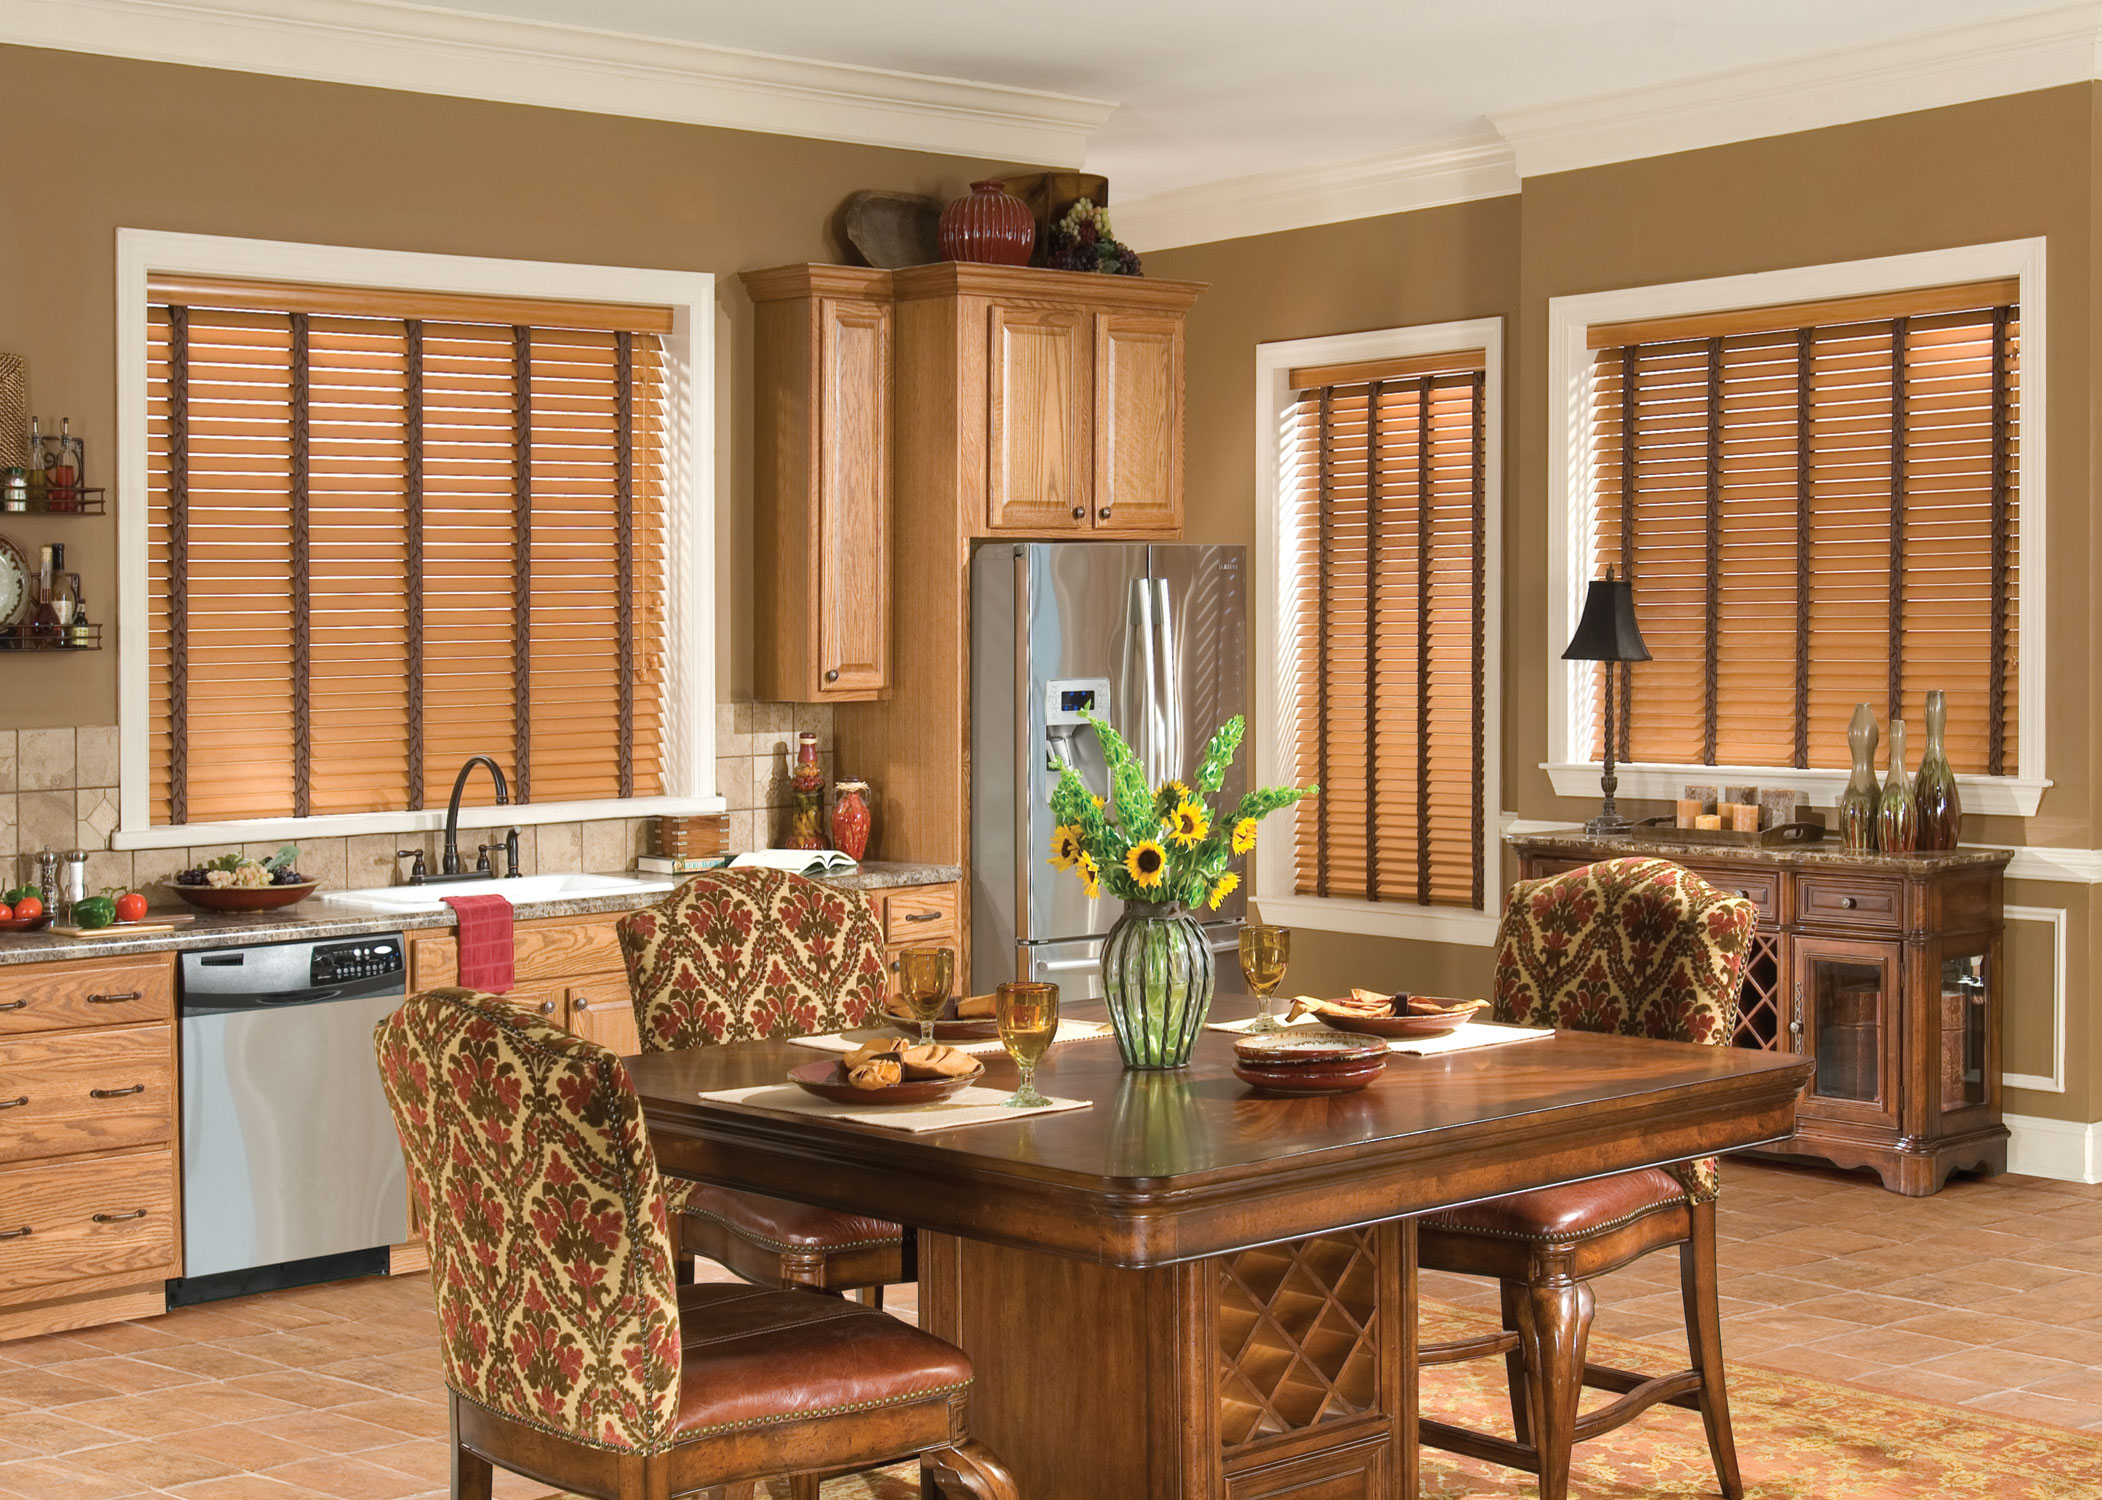 tan wall with glass dor with faux wood blinds matched with brown tile floor plus dining table set for dining room decor ideas